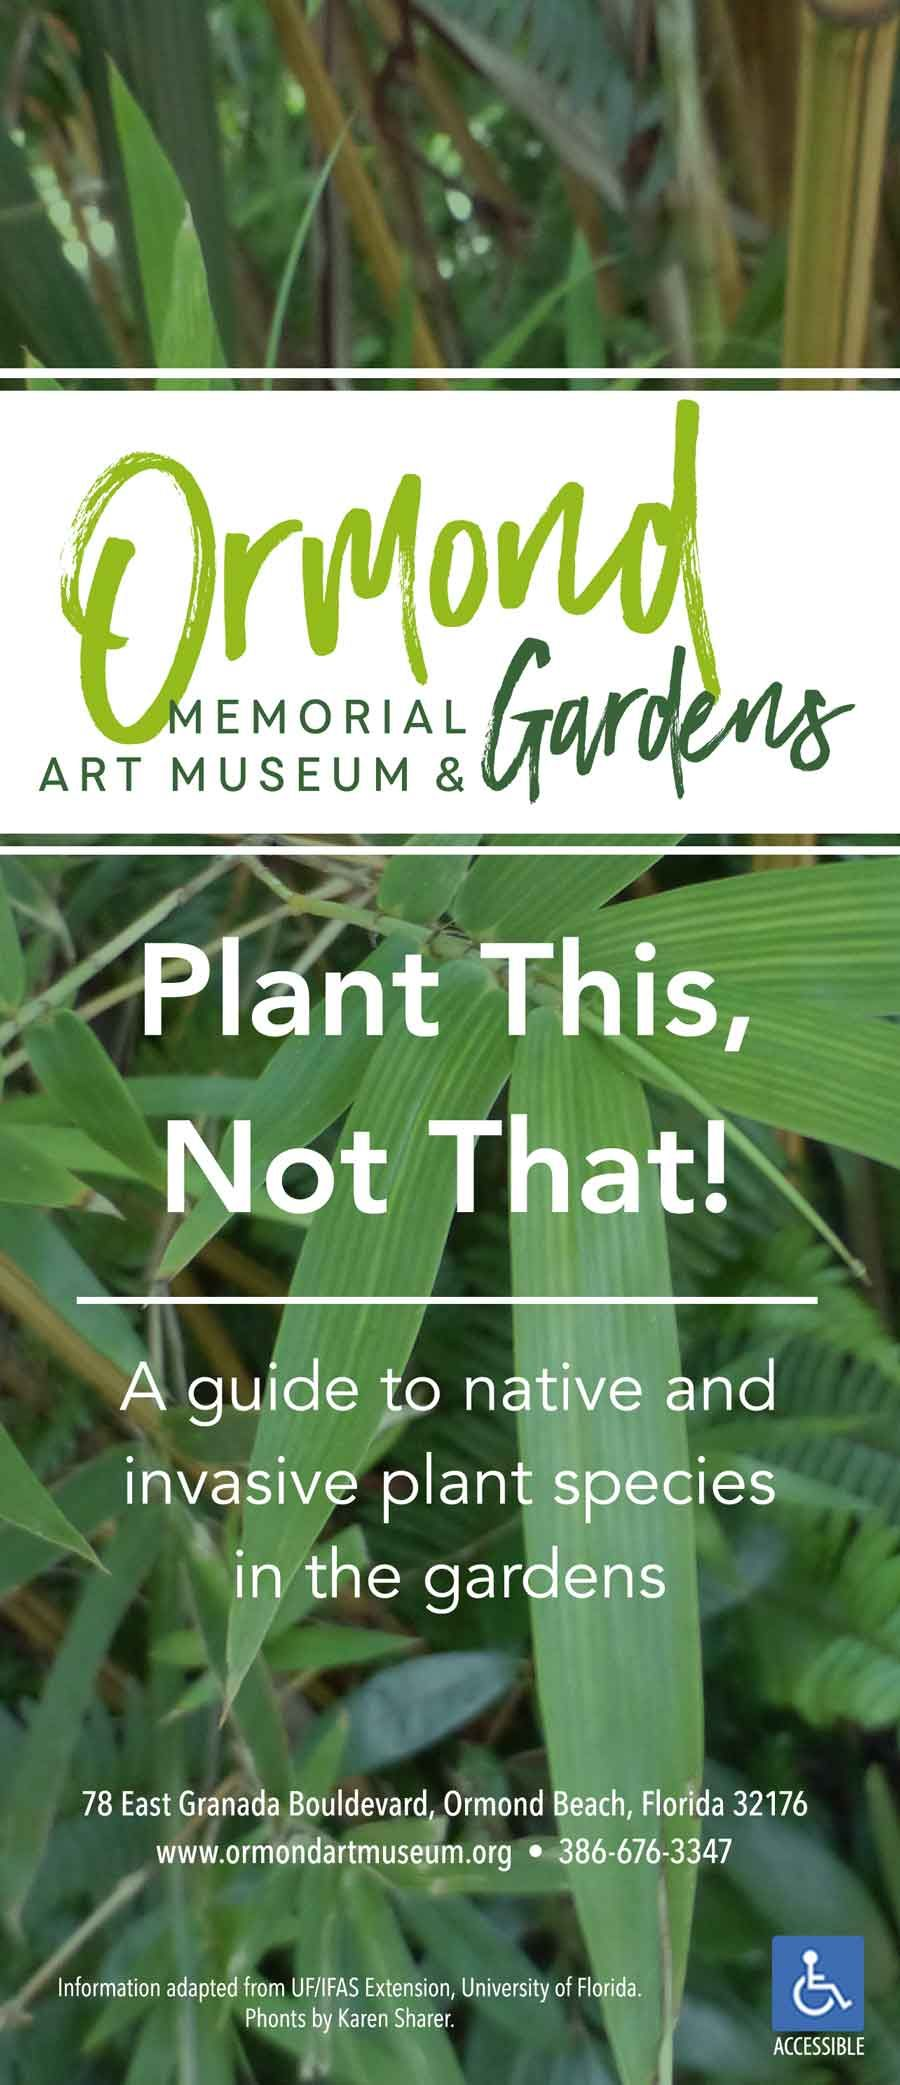 A guide to native and invasive plant species in the gardens